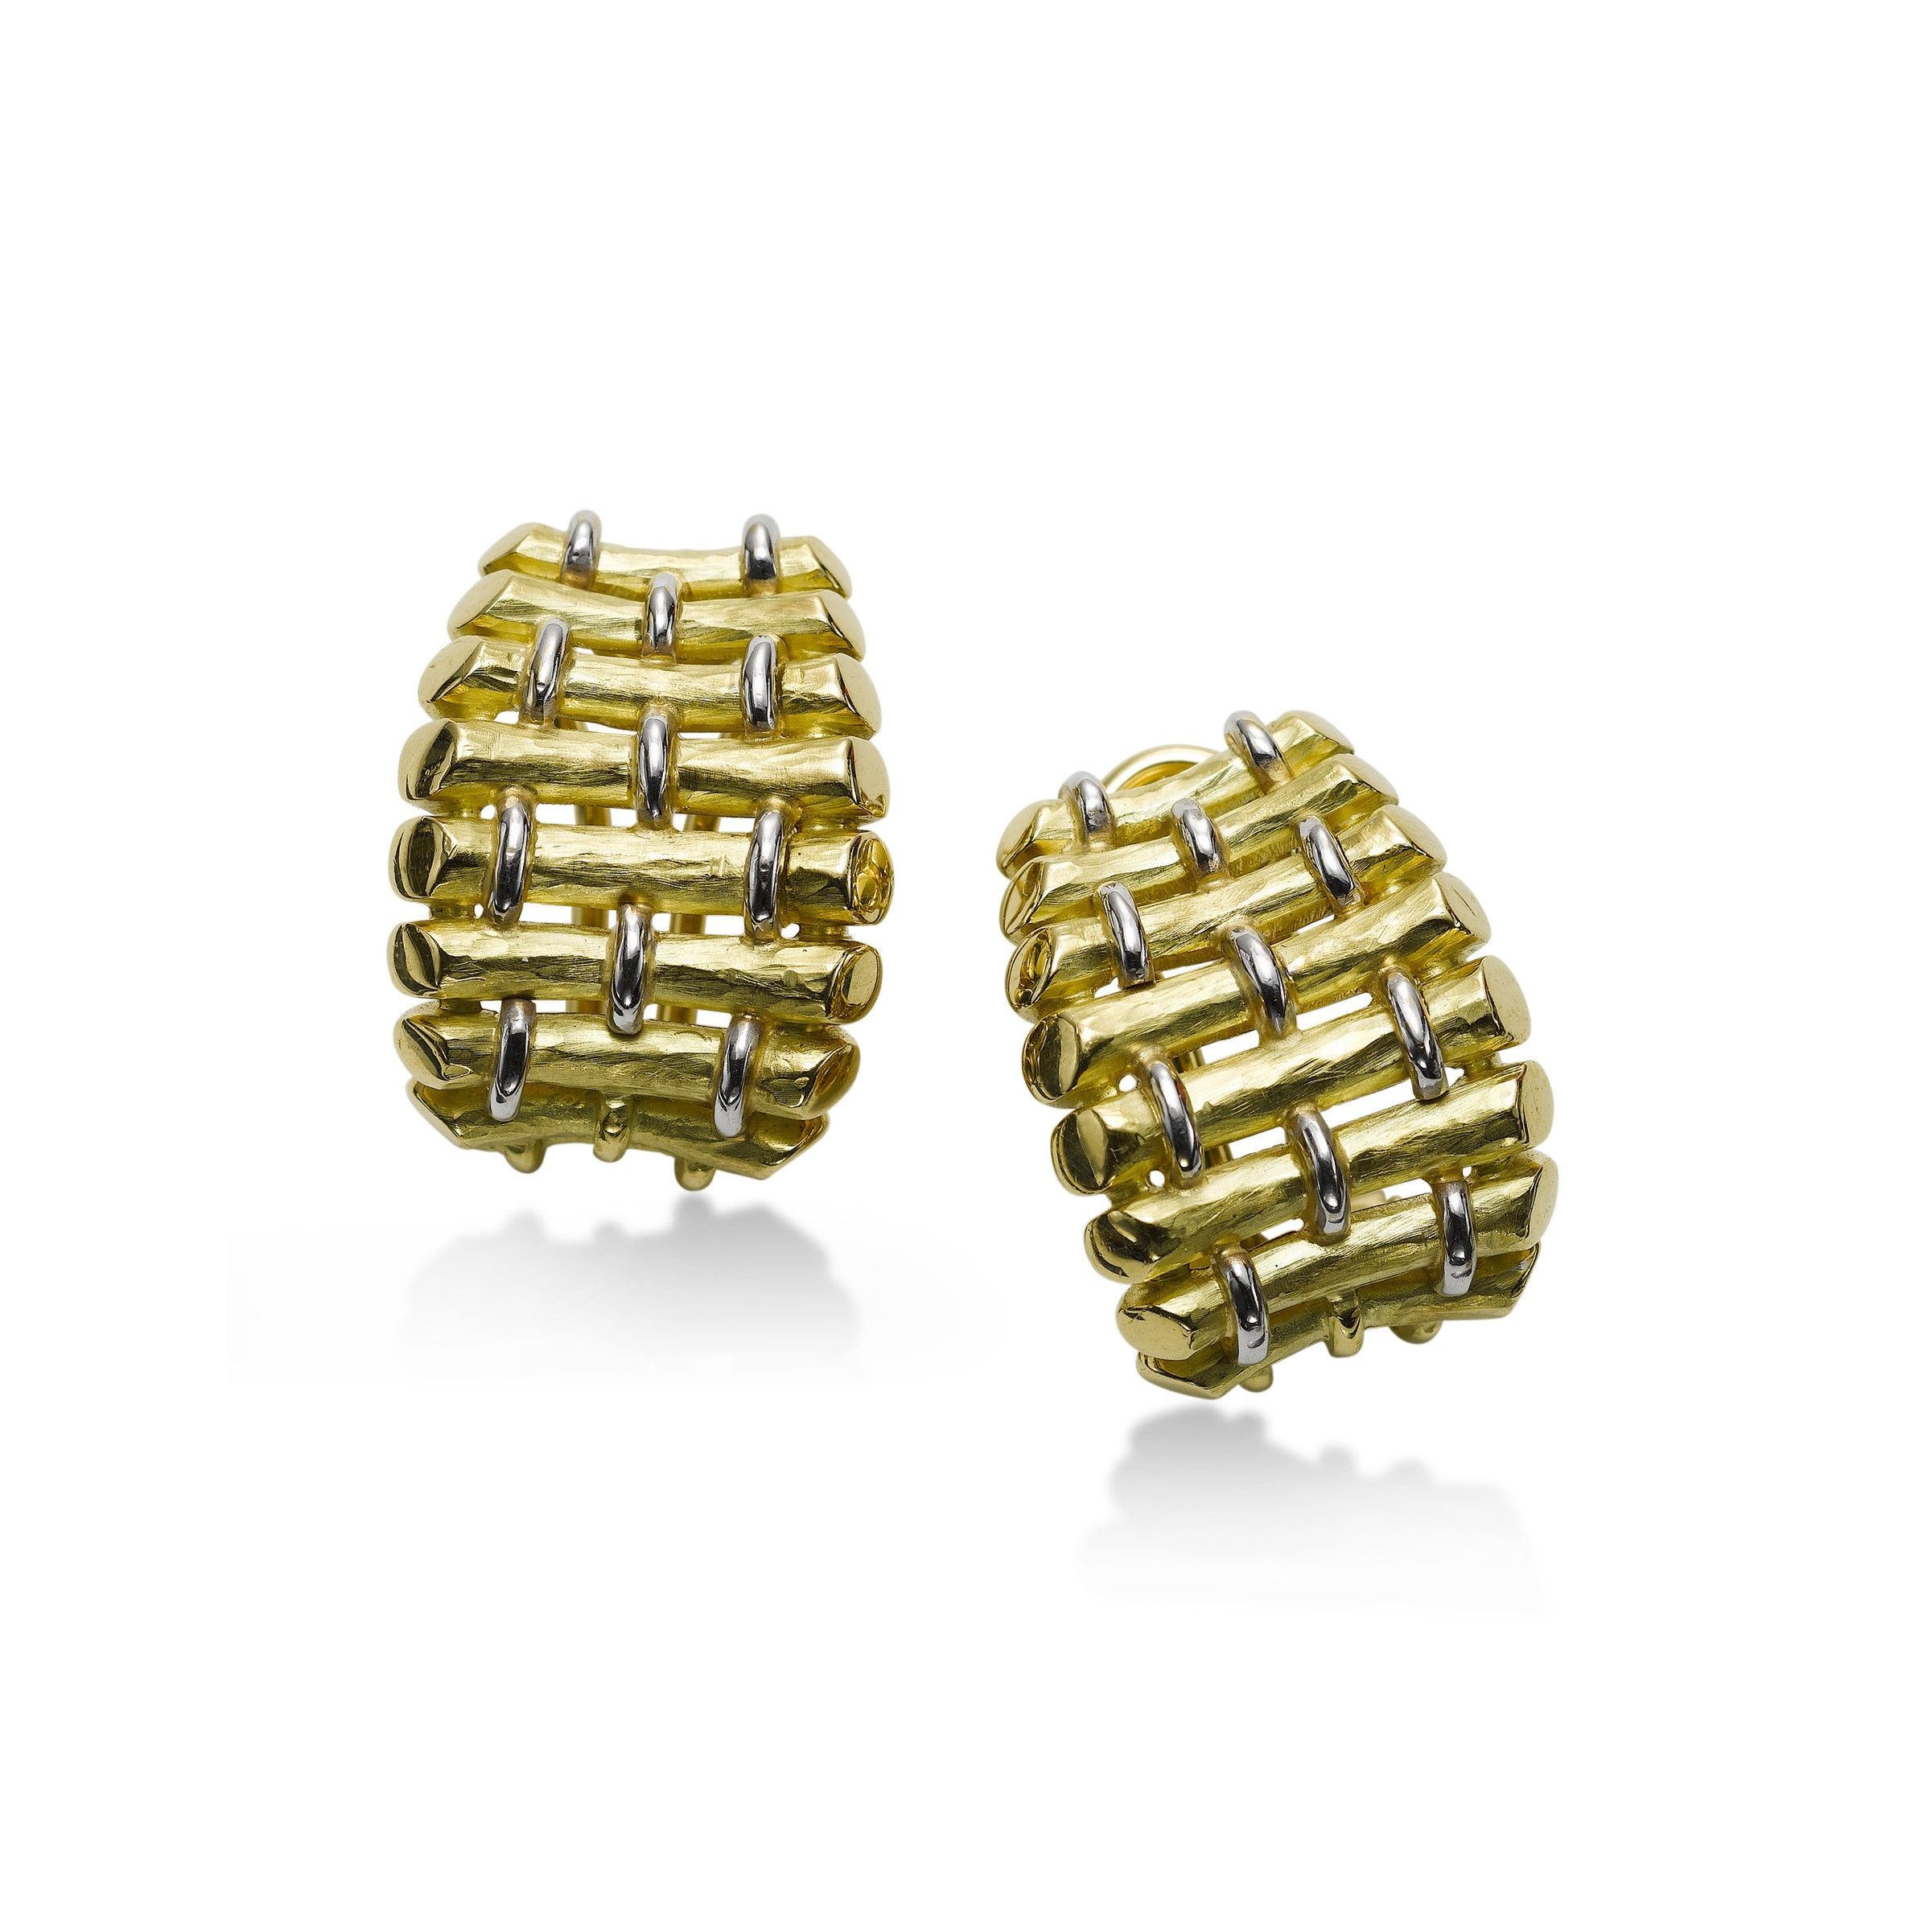 Gold earrings in a basket weave of white and yellow gold Theyure